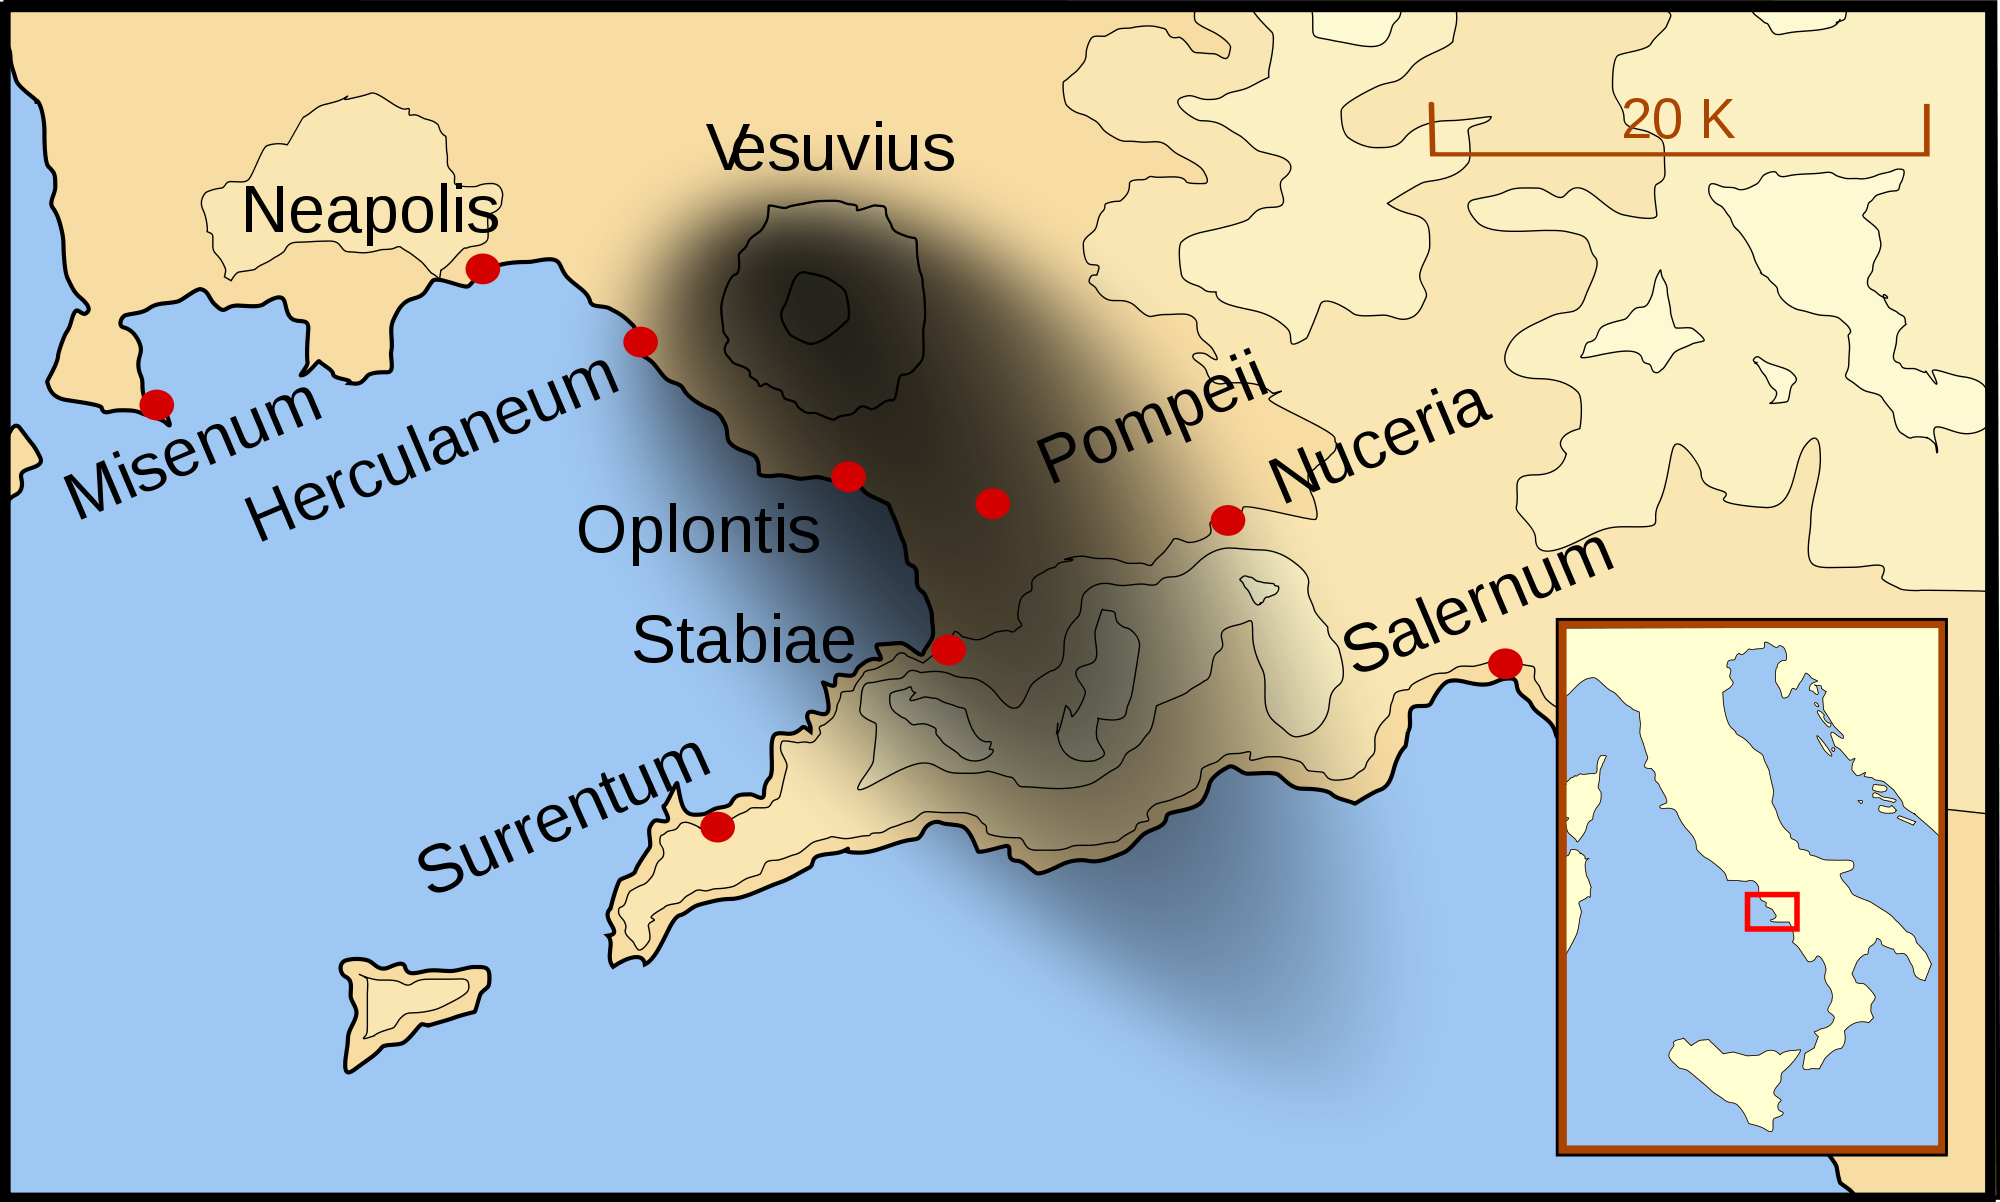 maps bay of naples Map Of Italy Naples And Pompeii bay of naples 79ad map of italy naples and pompeii